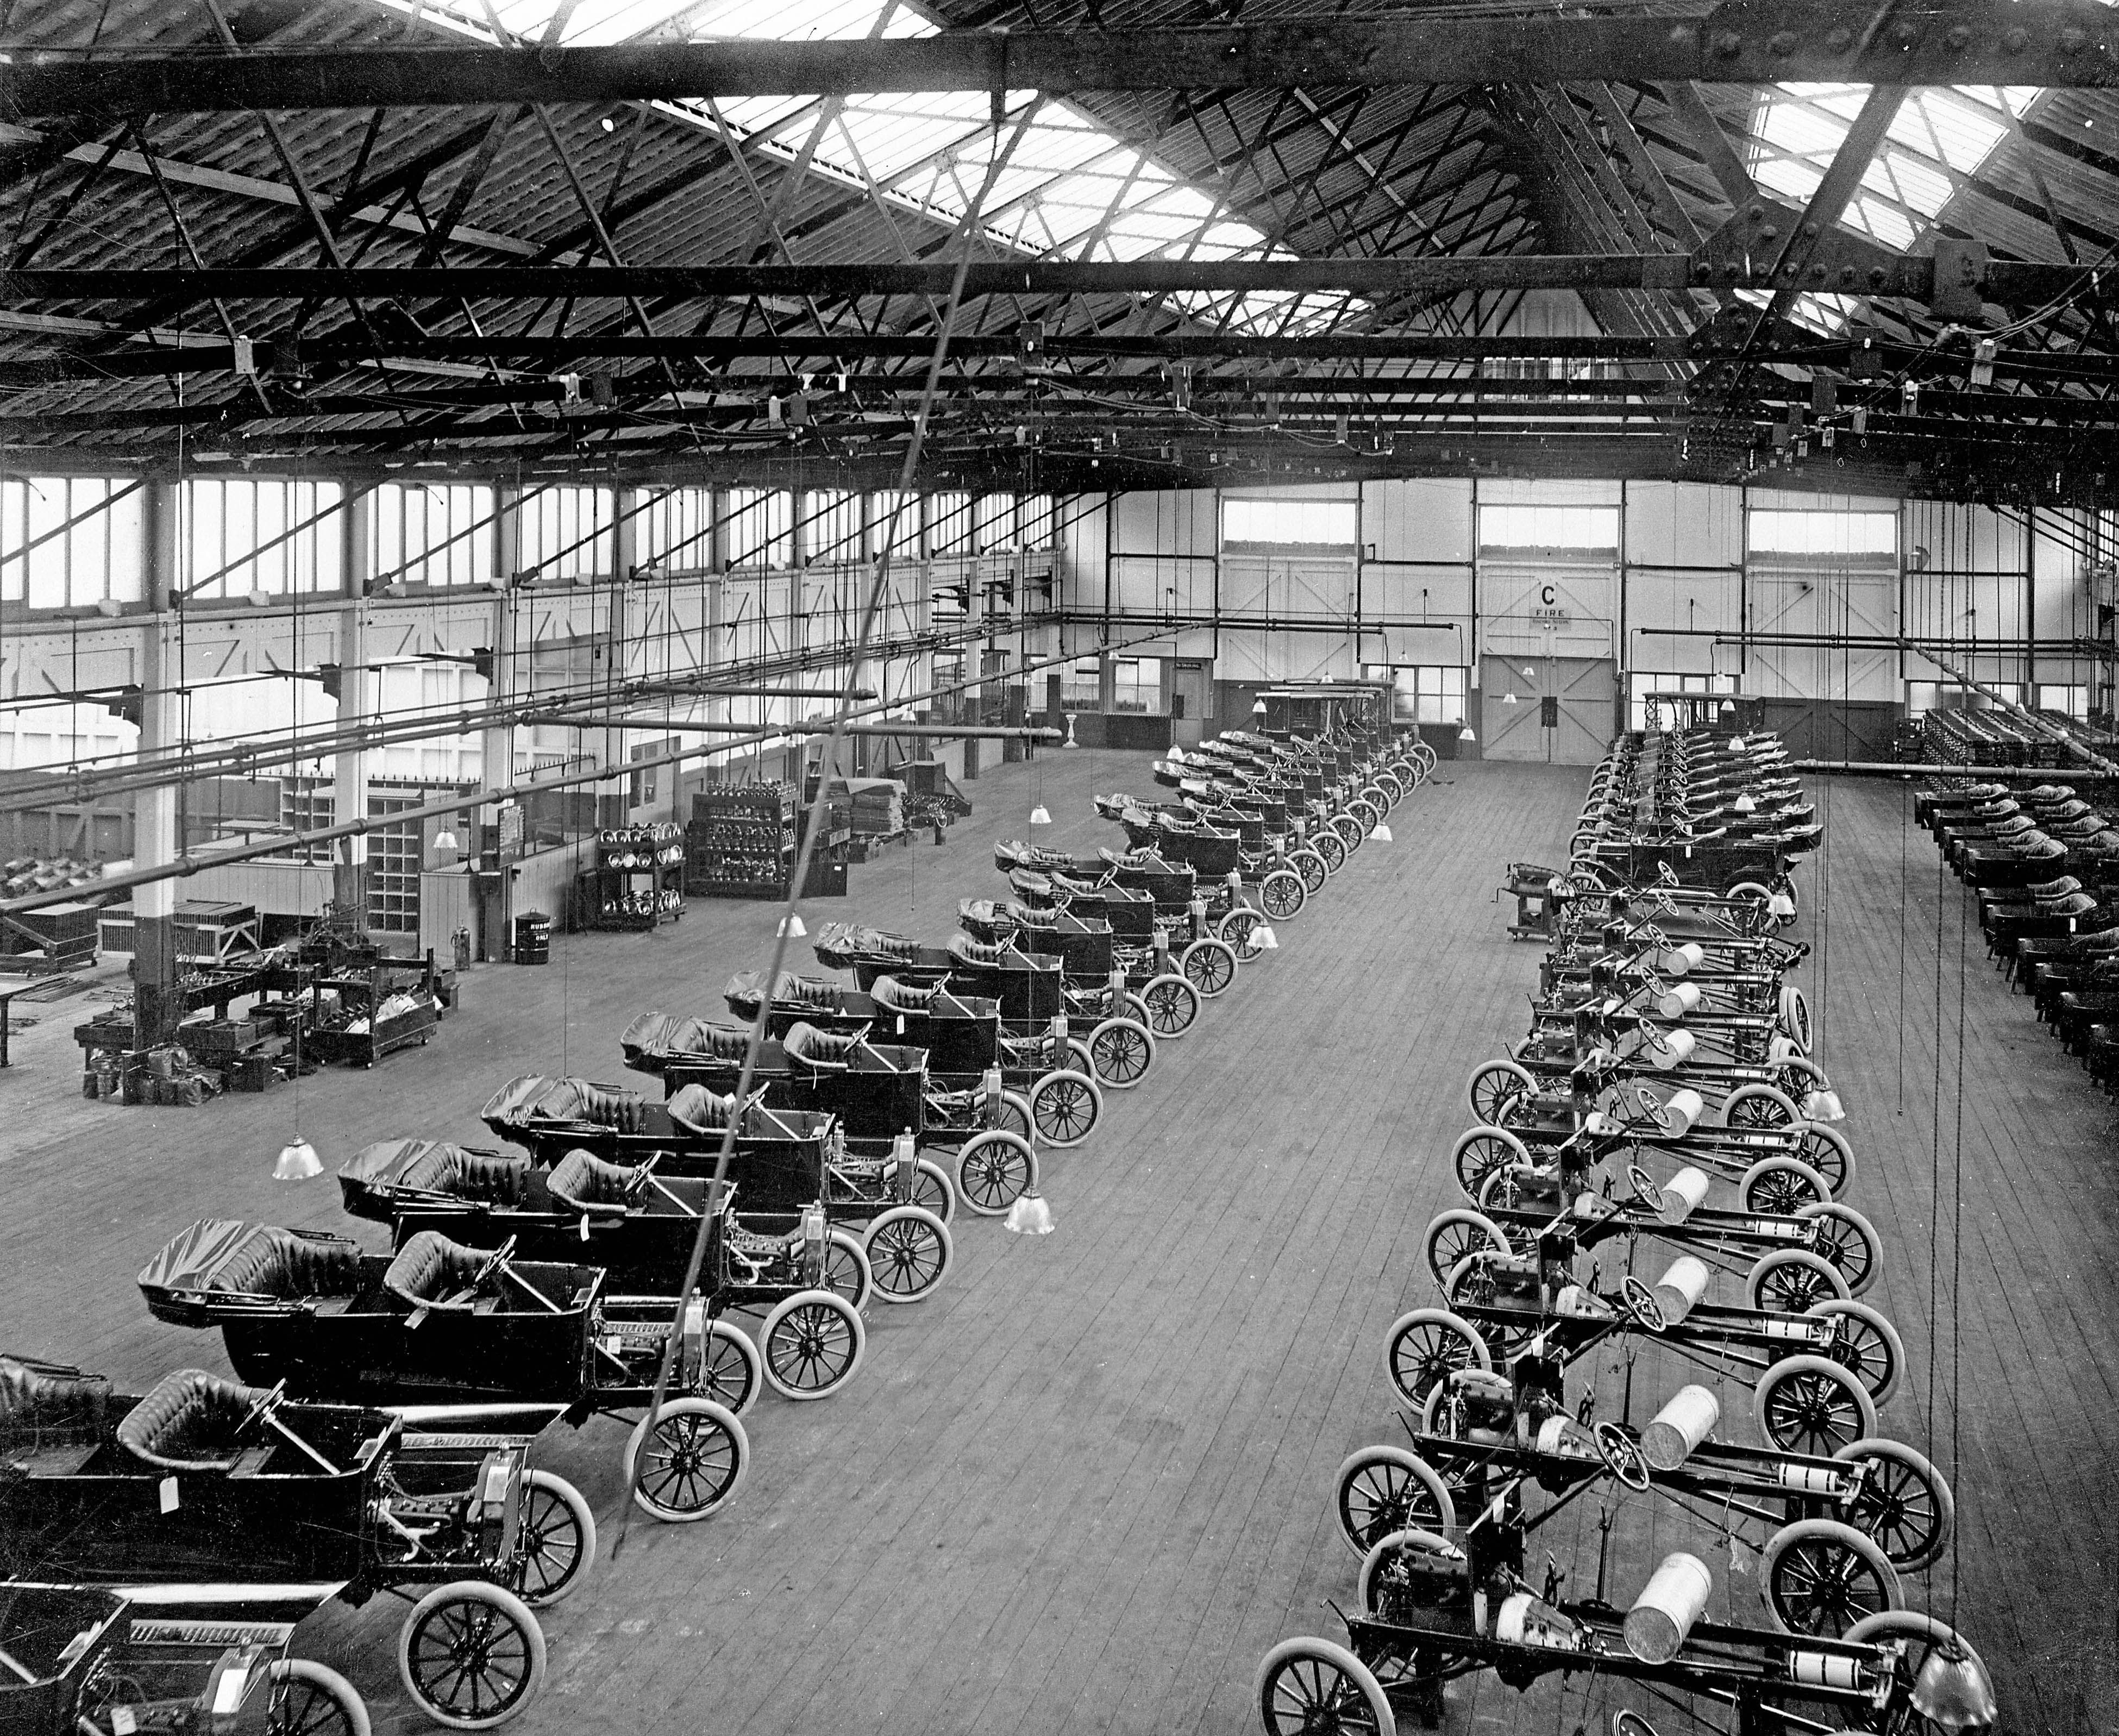 Interior of the Ford works, Trafford Park, Manchester, c1911-c1927. Photographer unknown.